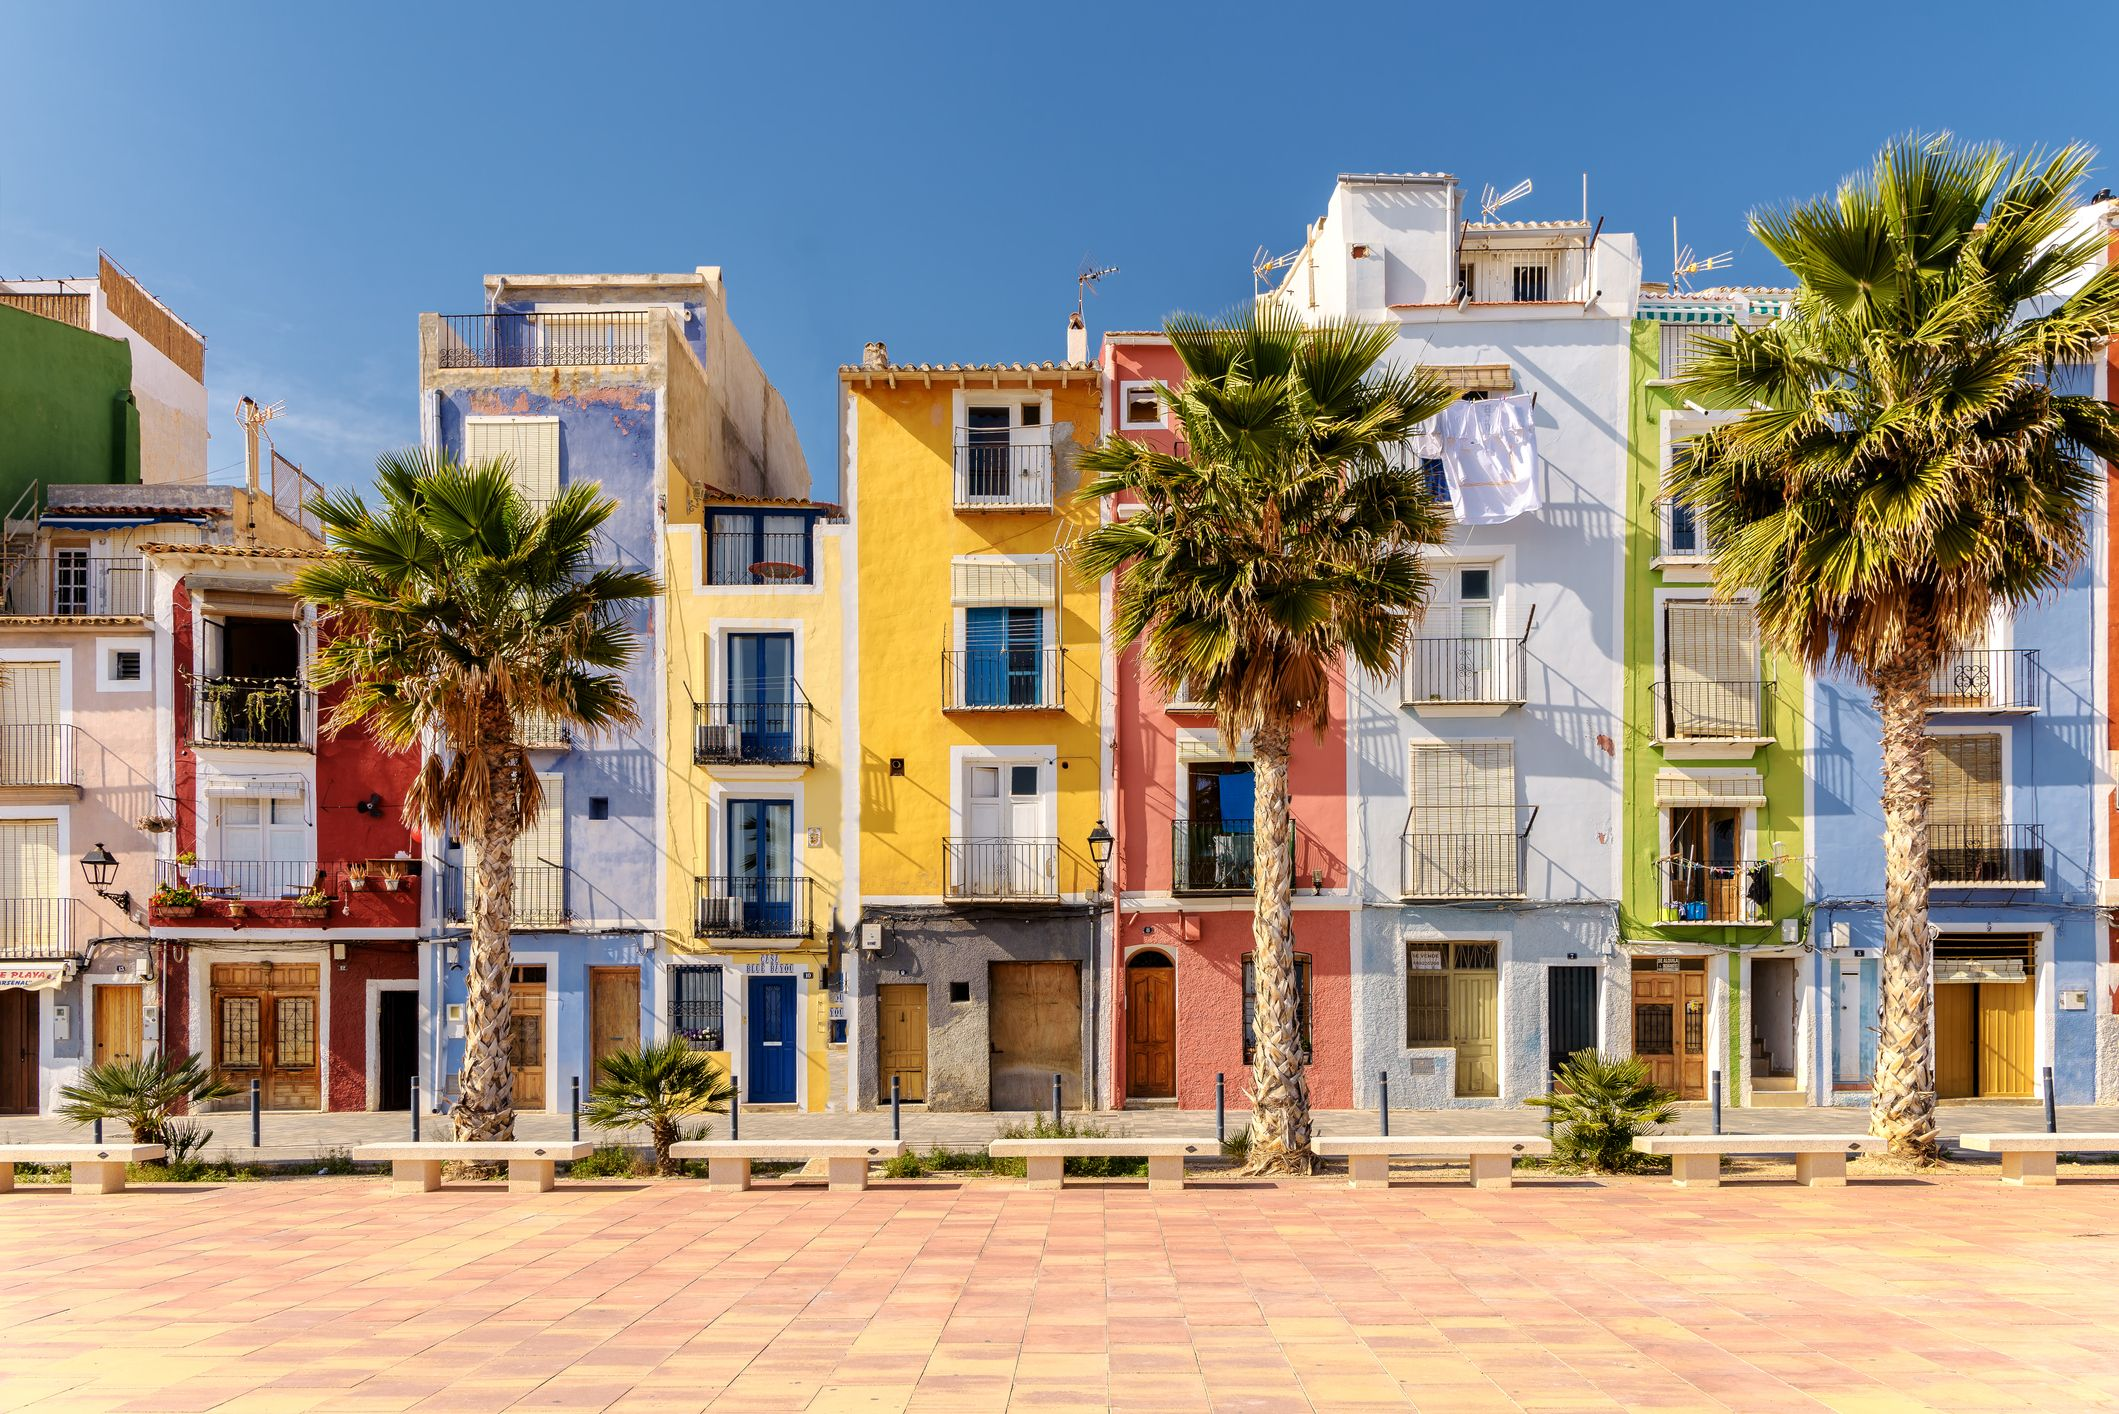 Colorful beach homes in Mediterranean Villajoyosa, Southern Spain